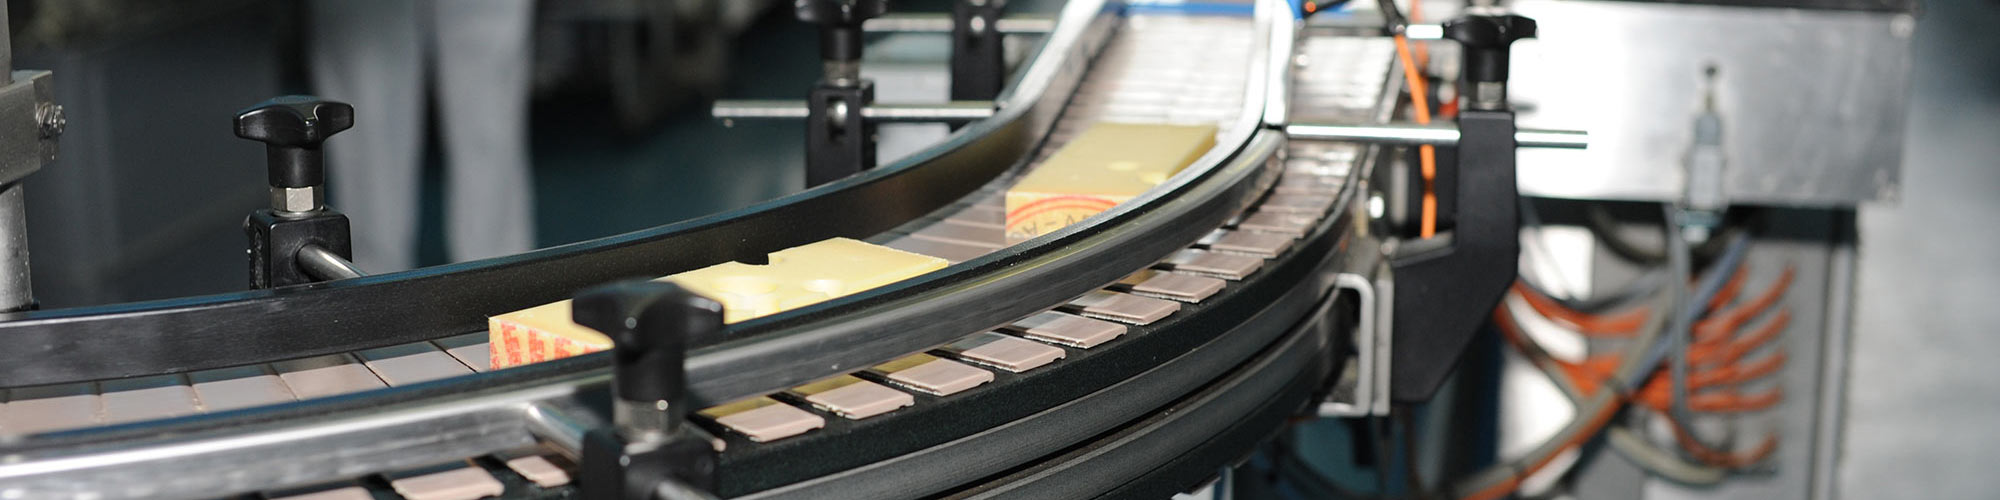 Drive and conveyor technology